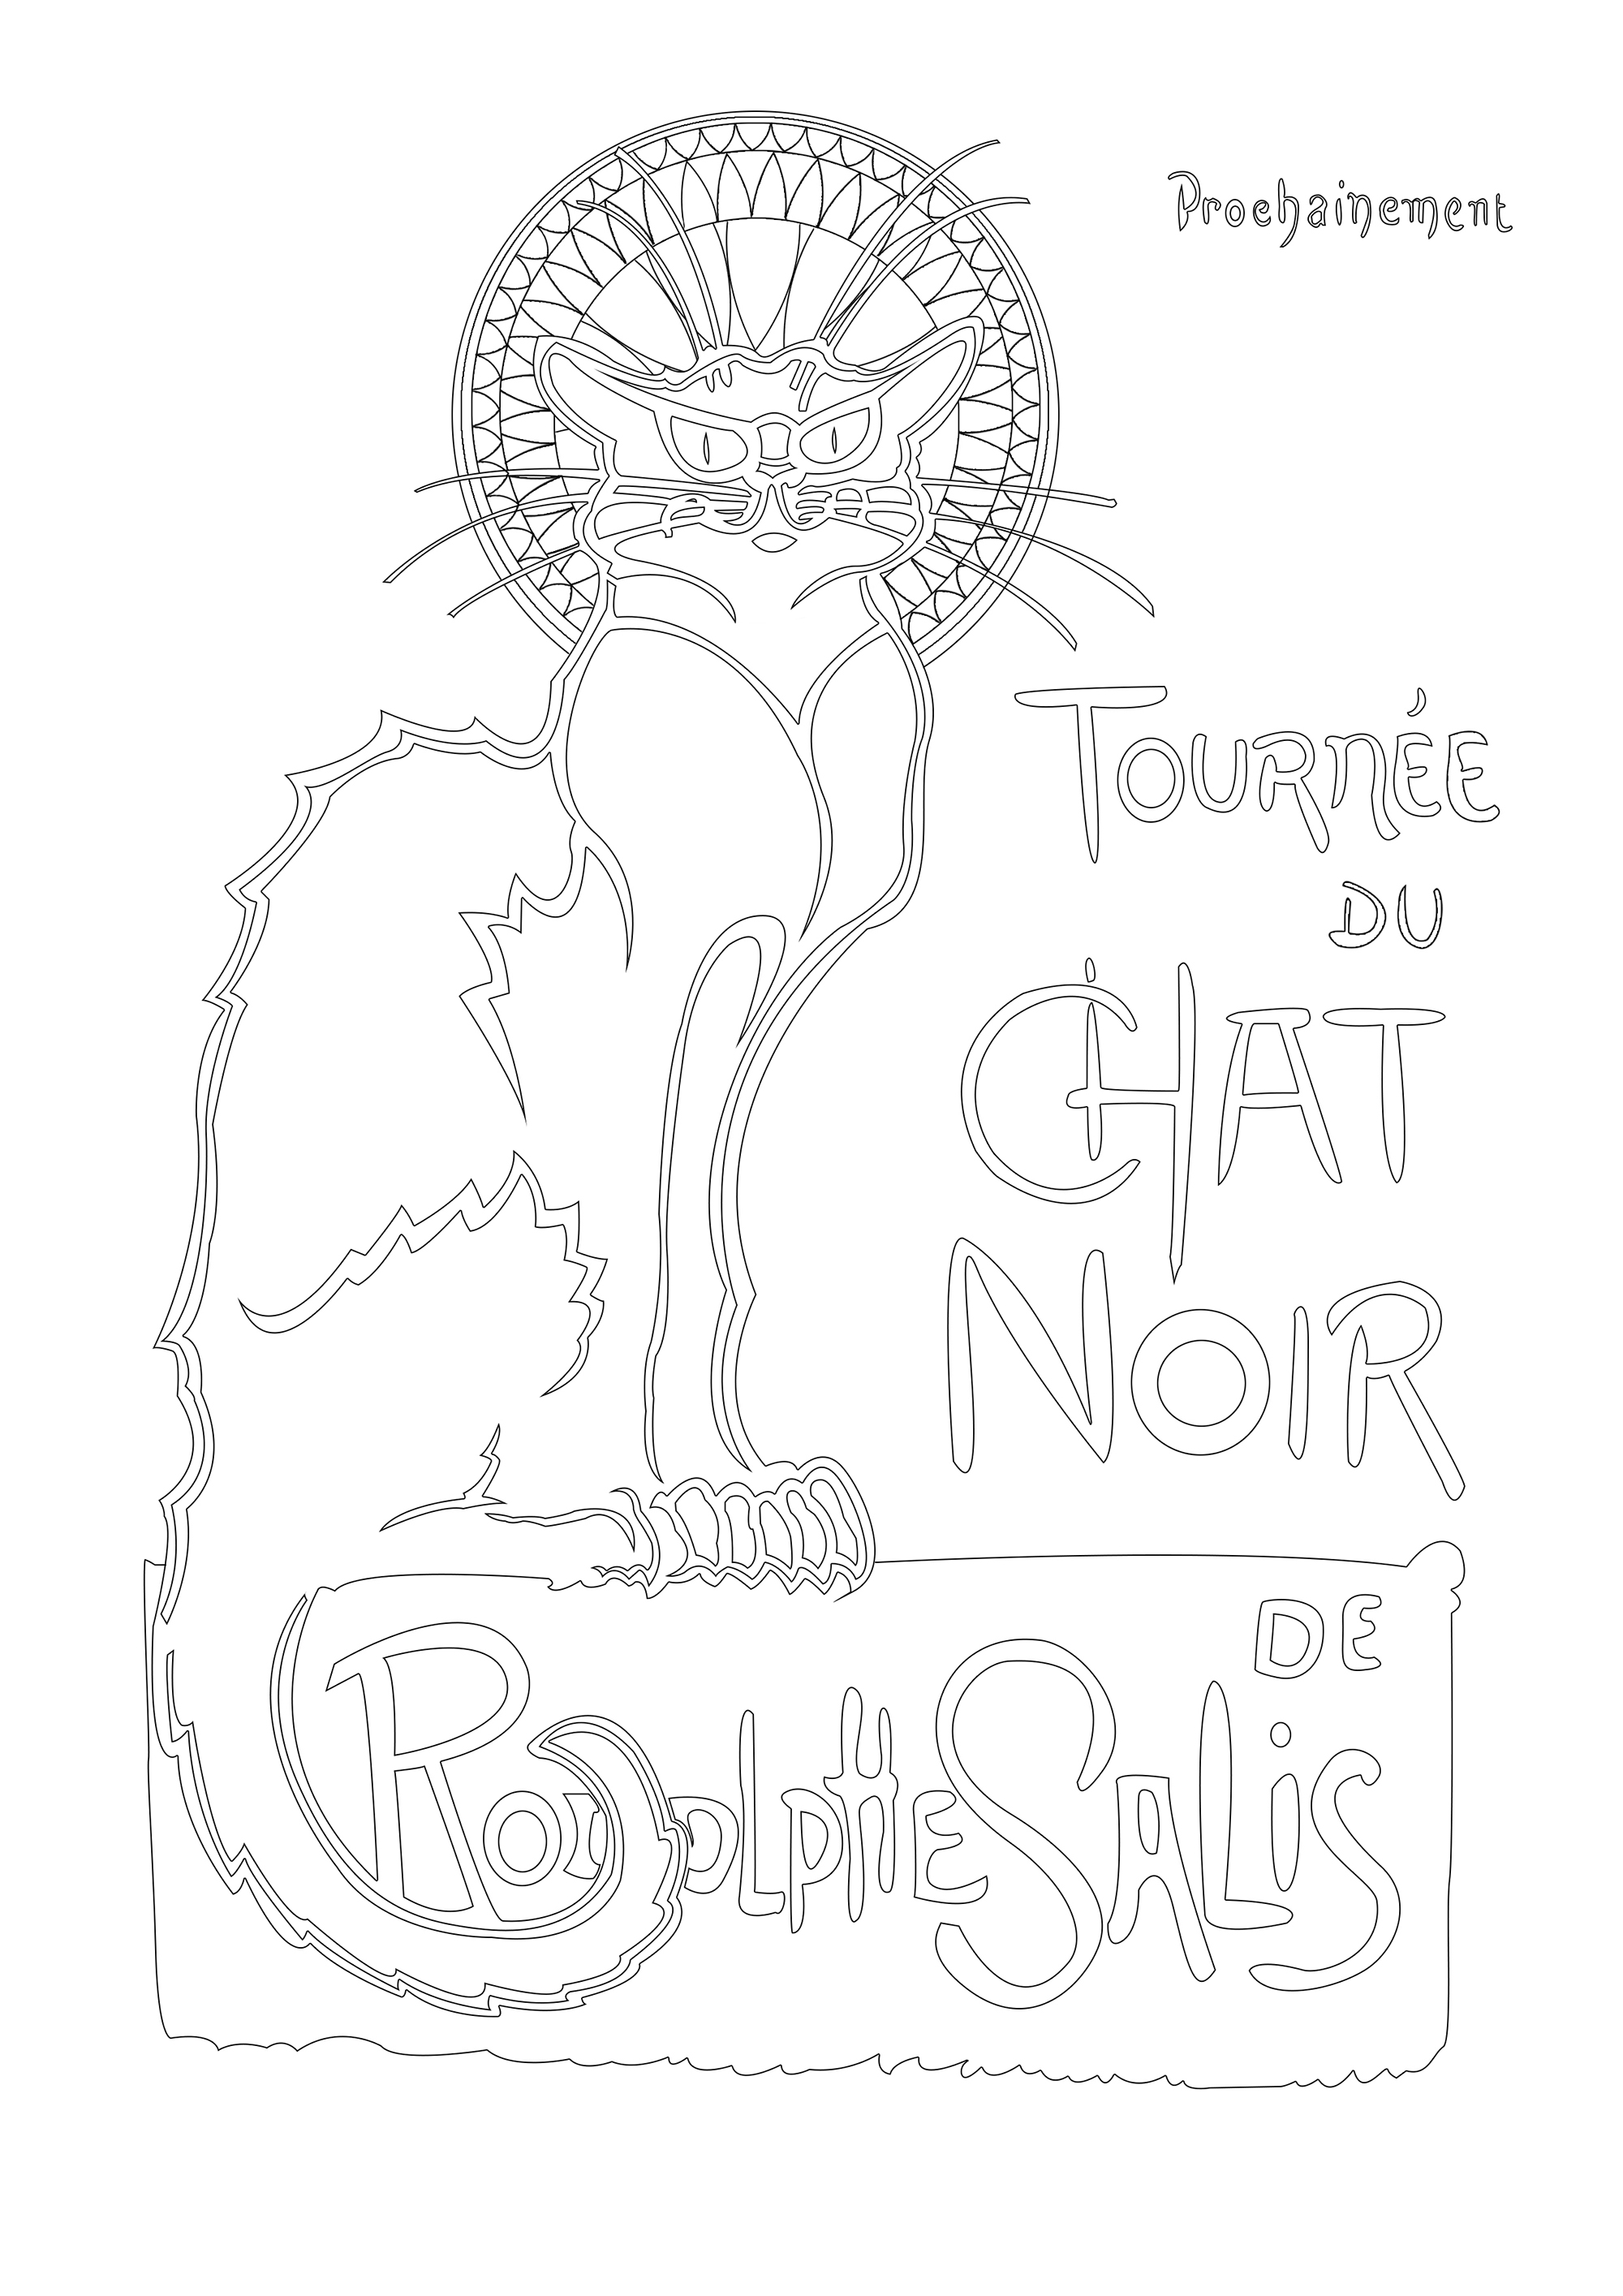 Best known now by its iconic Théophile Steinlen poster art, Le Chat Noir was a nineteenth-century entertainment establishment, in the bohemian Montmartre district of Paris. It was opened on 18 November 1881 at 84 Boulevard de Rochechouart by the impresario Rodolphe Salis, and closed in 1897 not long after Salis' death.